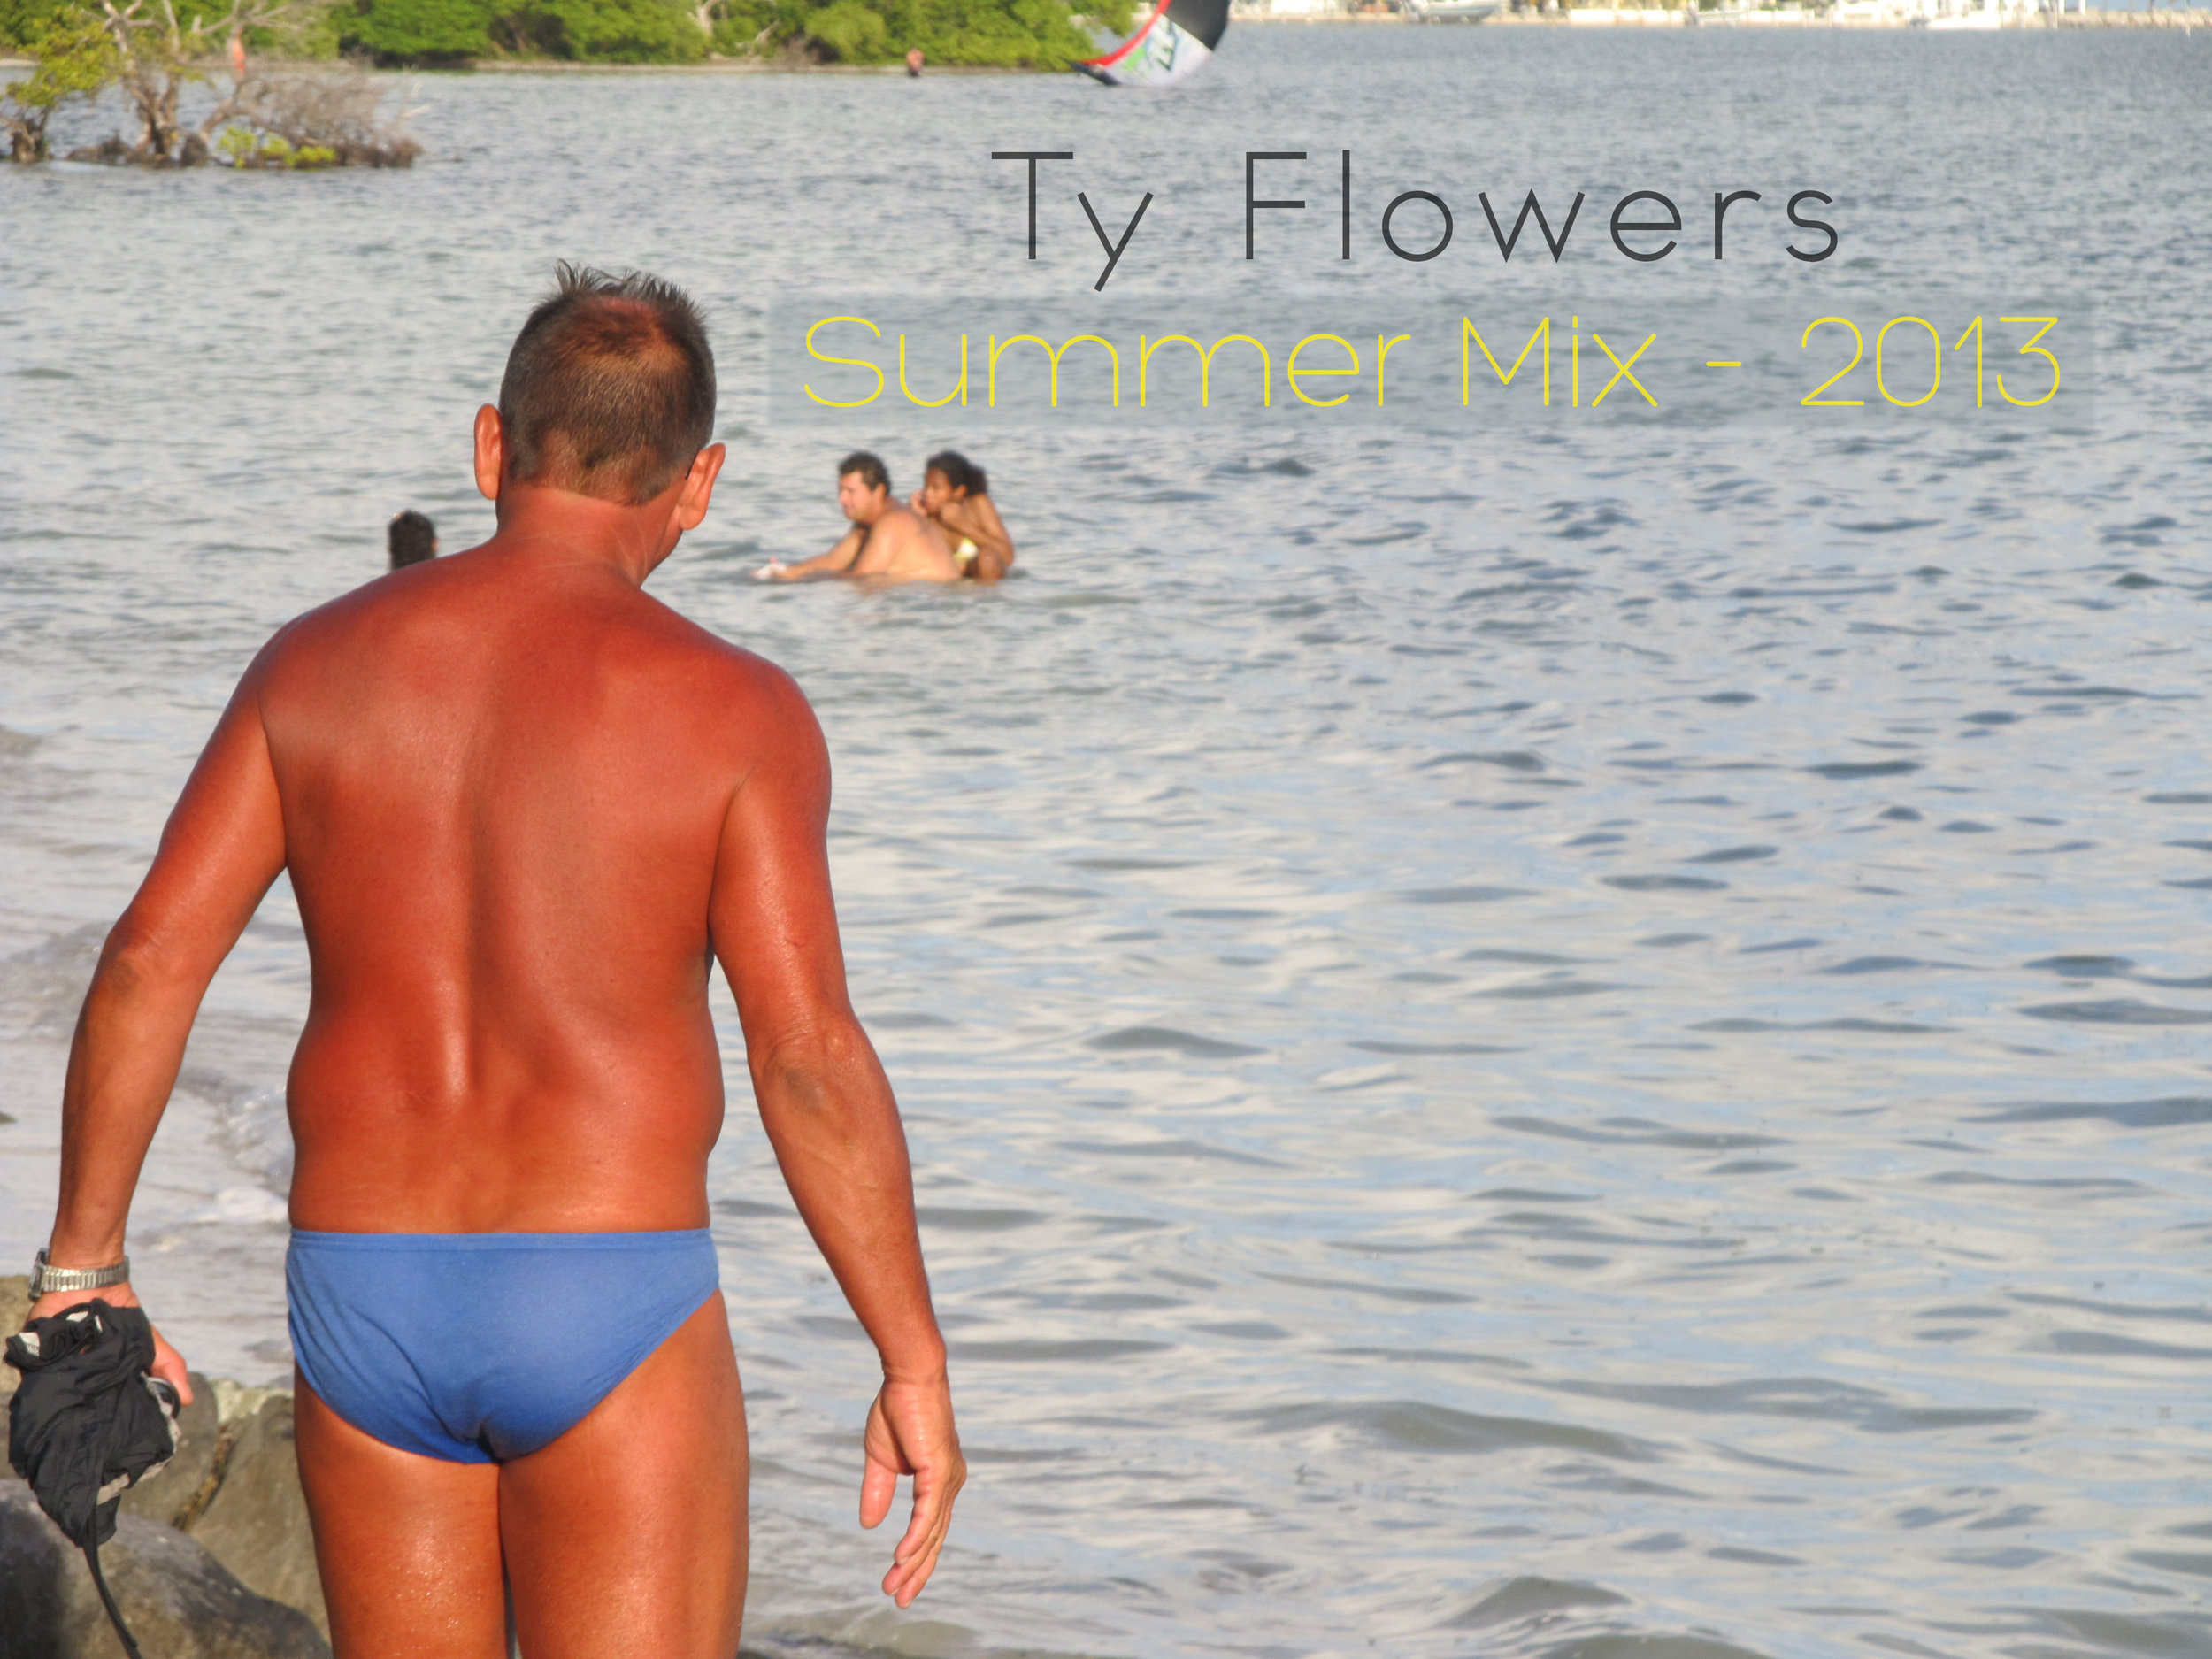 Ty Flowers Summer Mix 2013